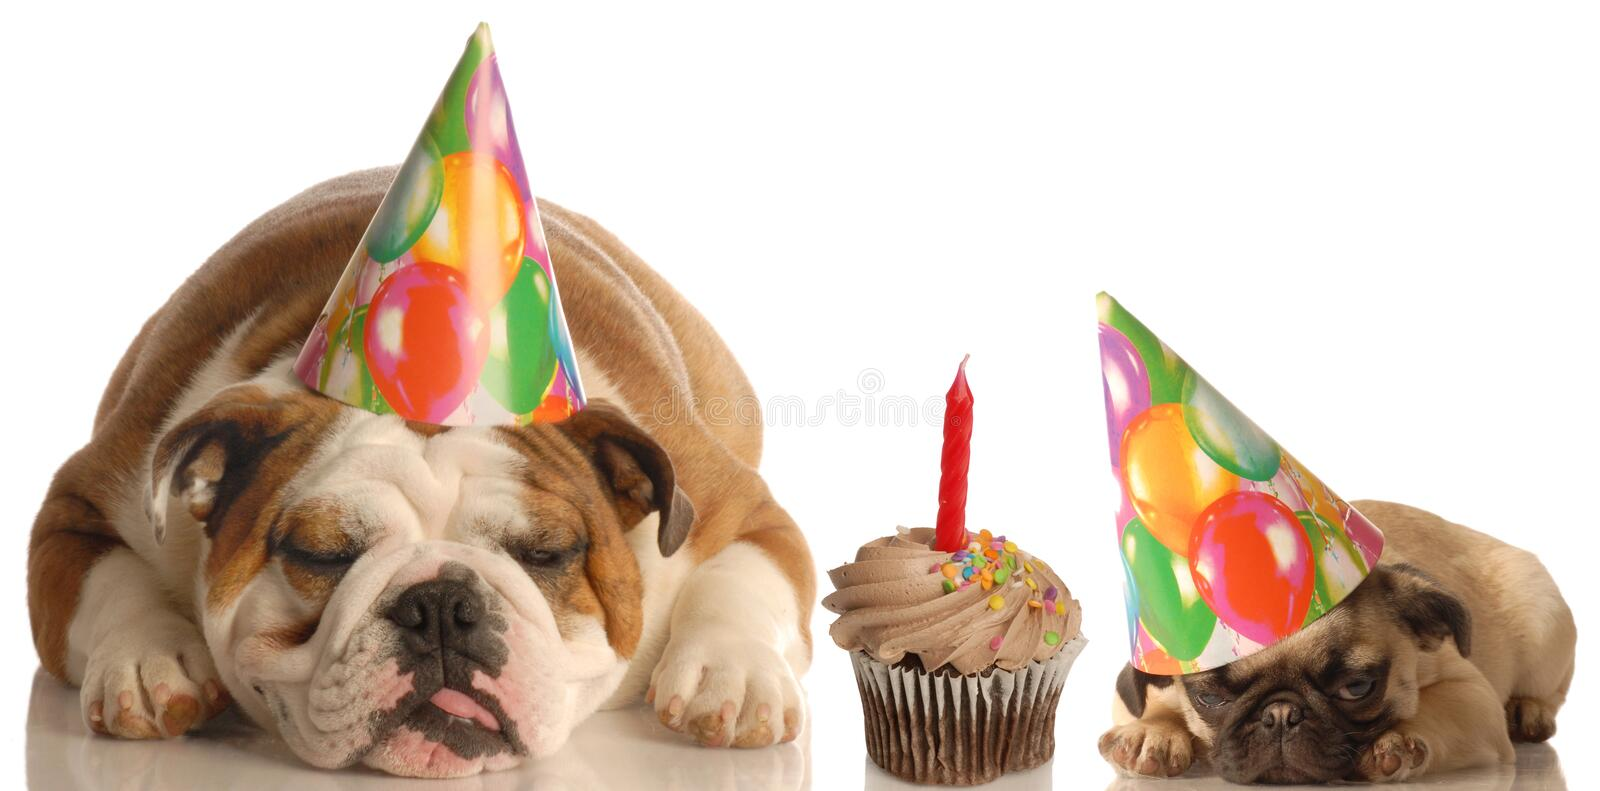 Party Animals Royalty Free Stock Photos